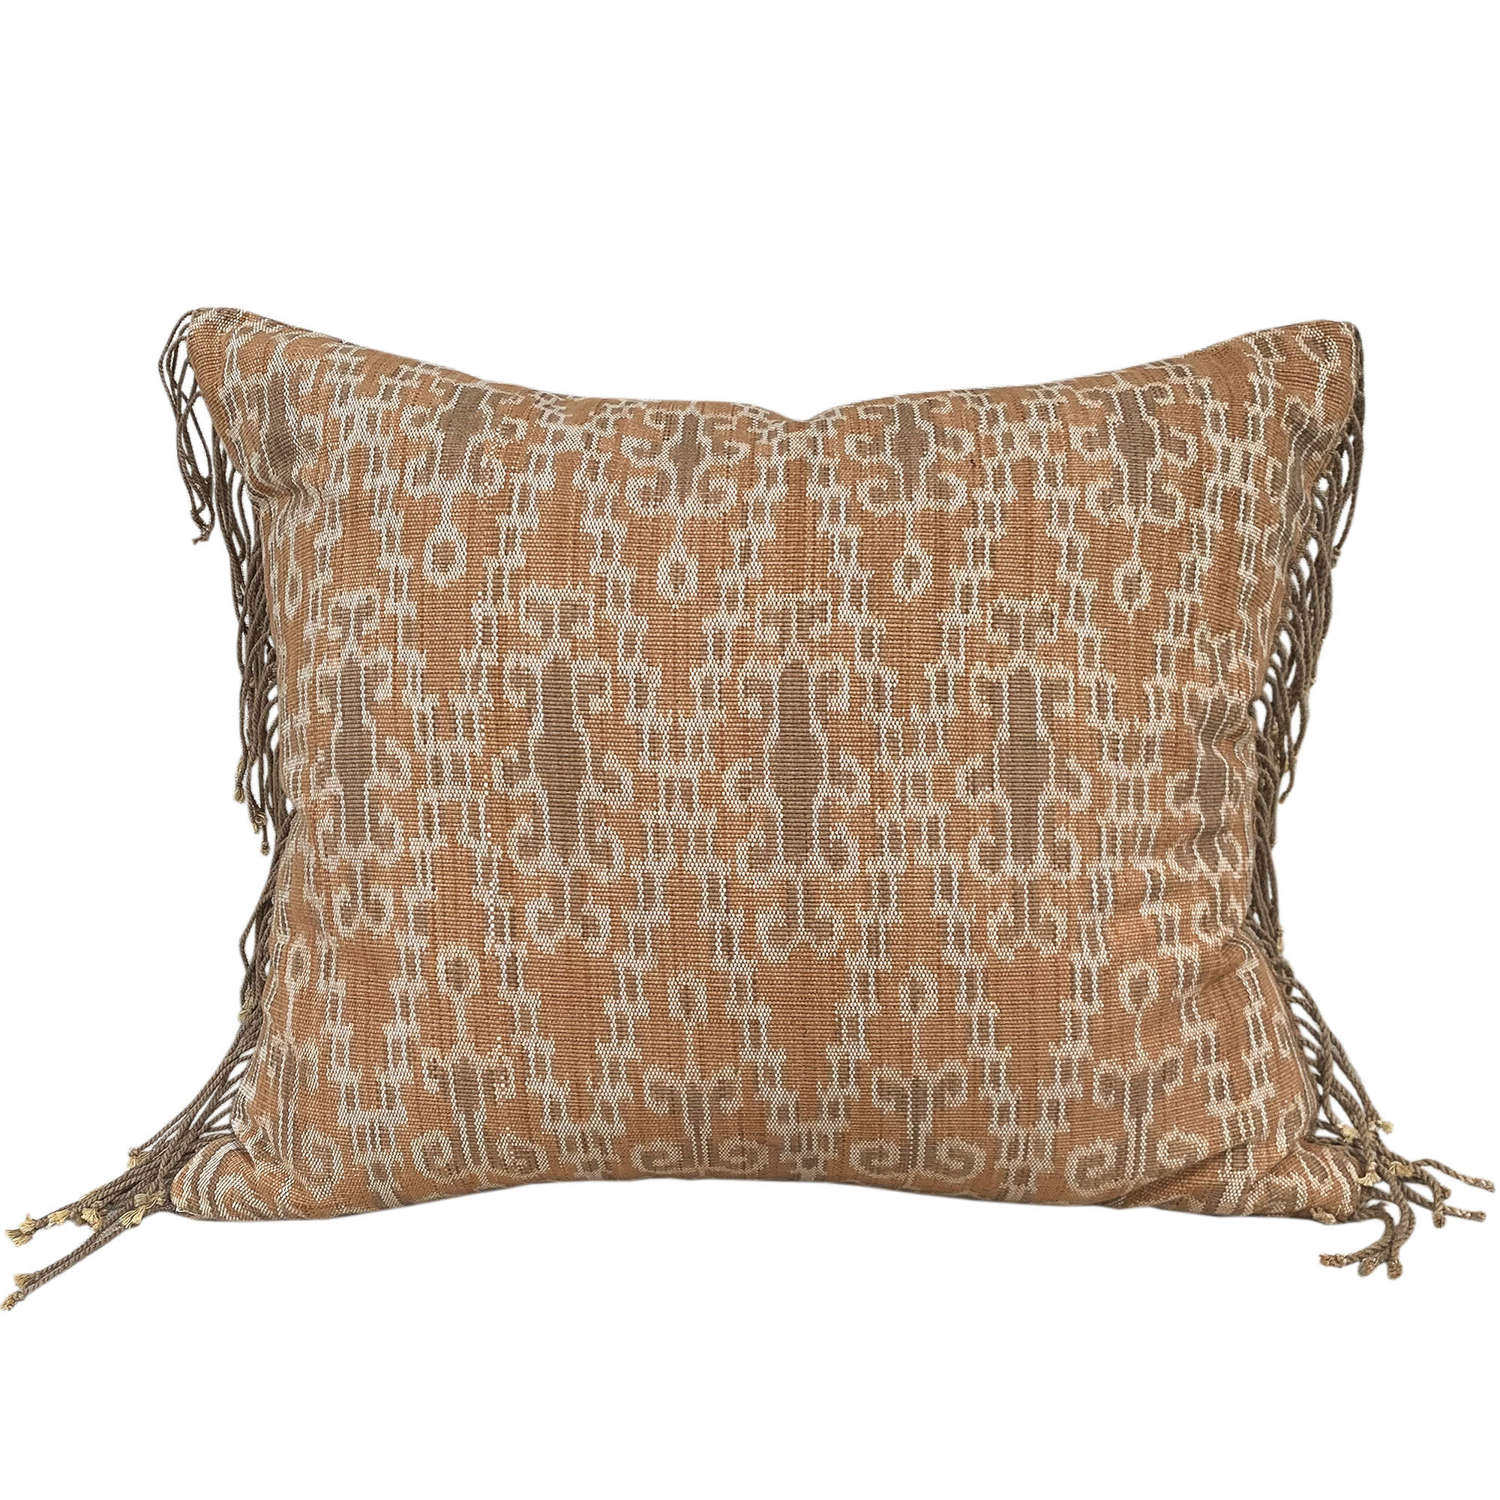 Dayak ikat cushion with fringed ends